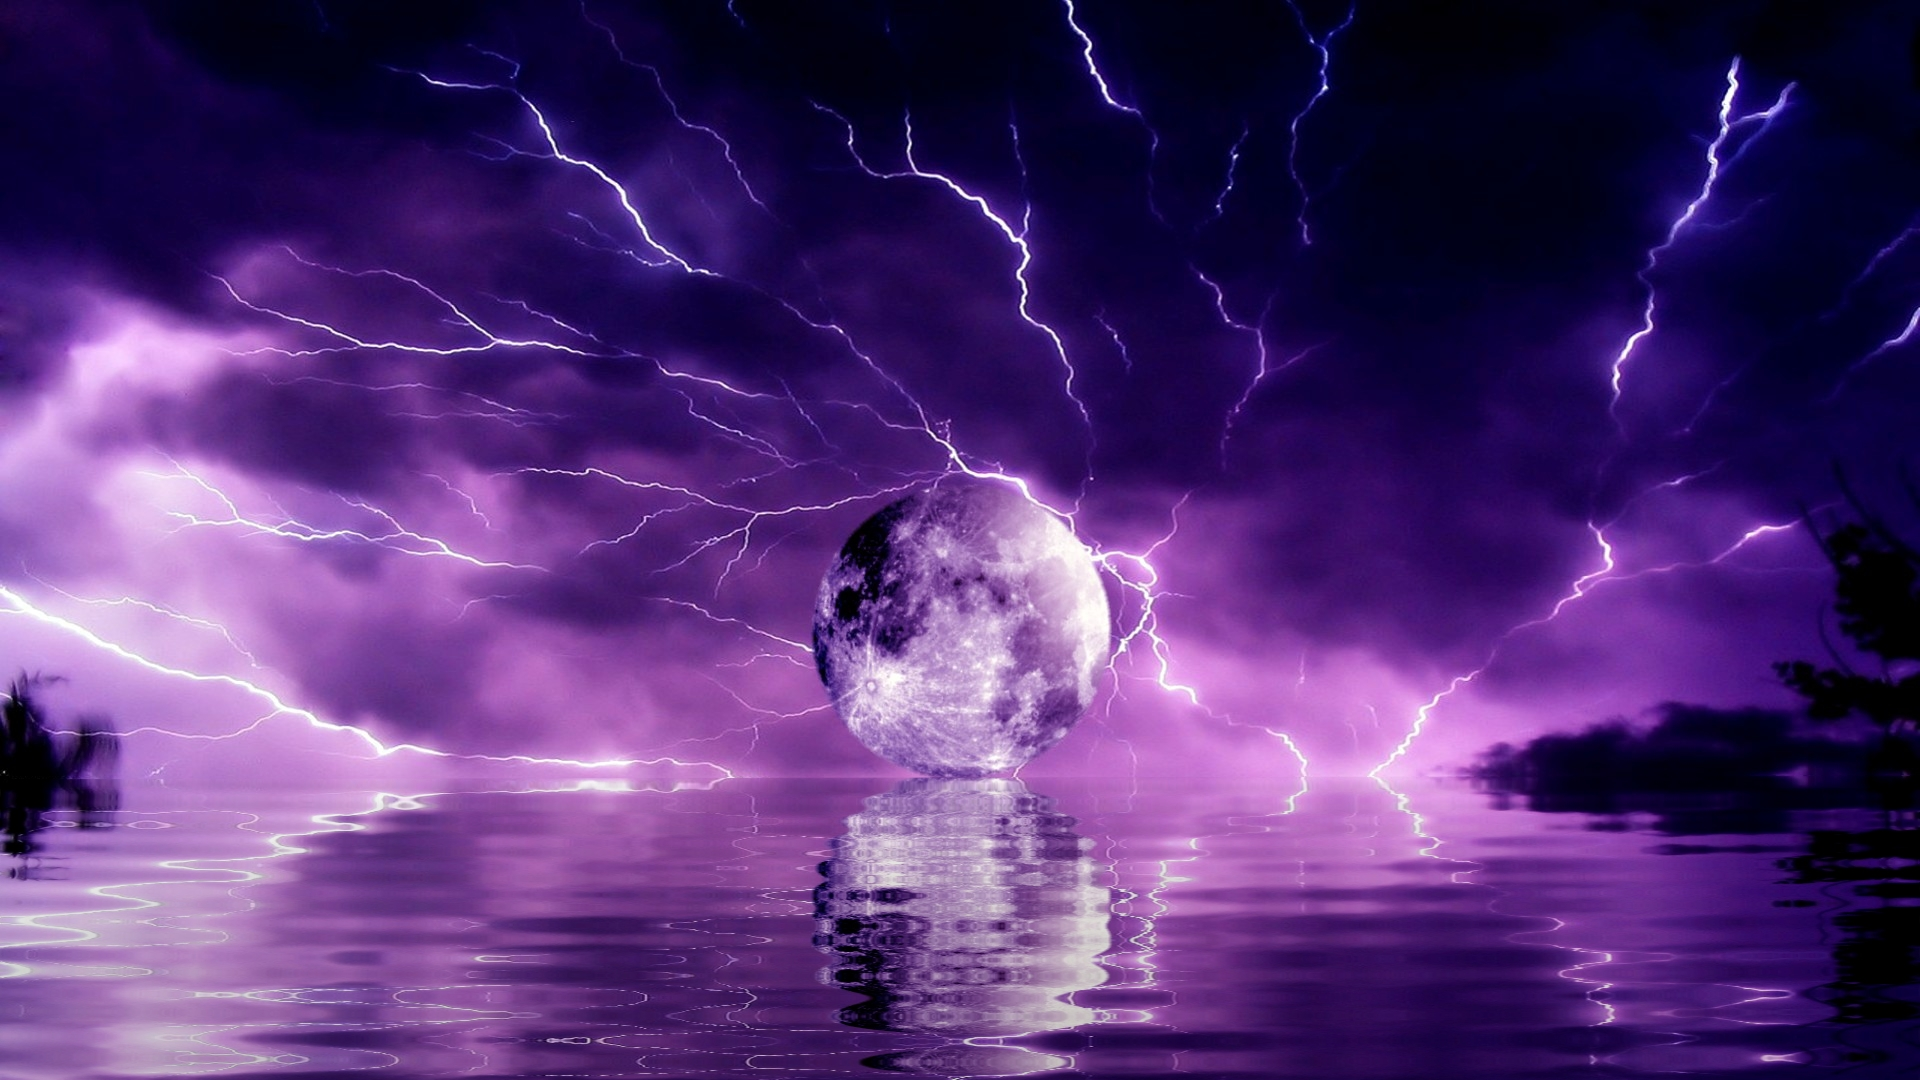 Animated Storm Wallpaper photos Cool Natural Storm Animated Background 1920x1080